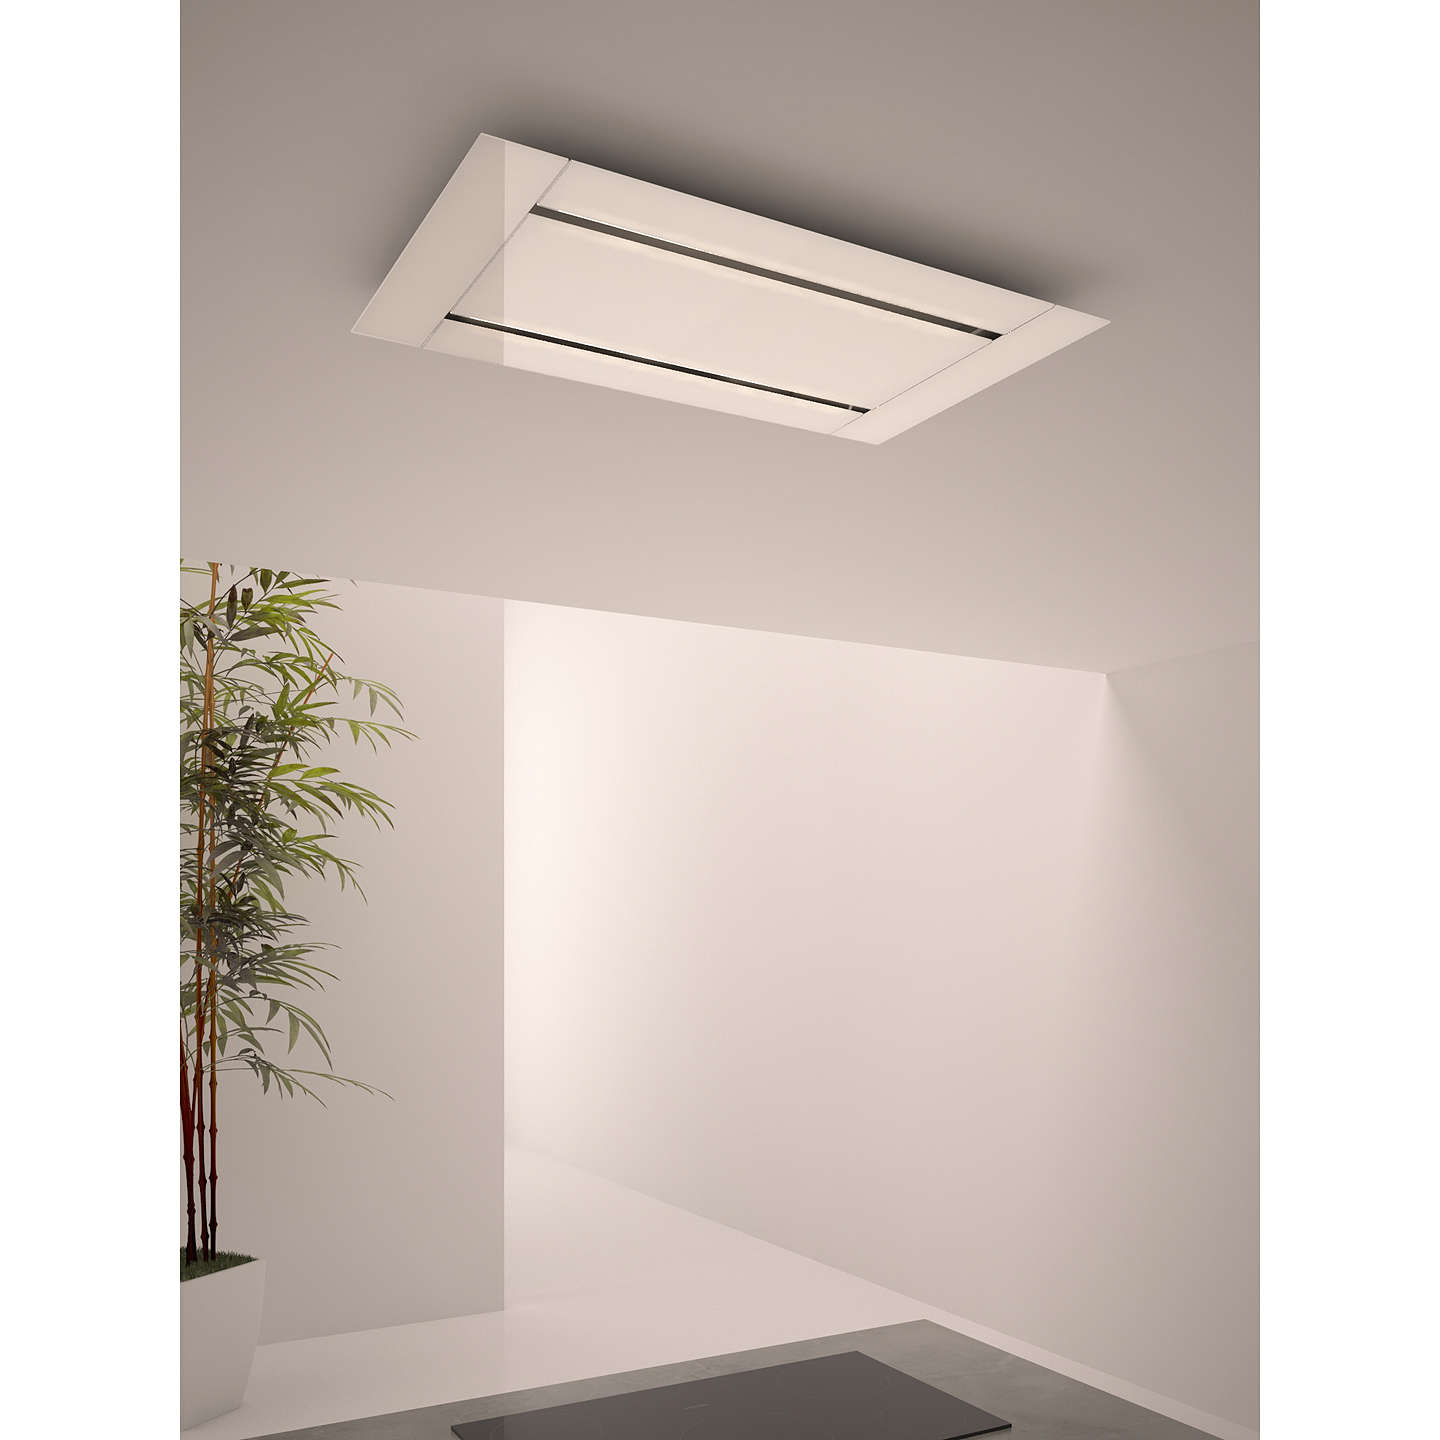 BuyJohn Lewis JLHDA918 Ceiling Cooker Hood, White Online at johnlewis.com